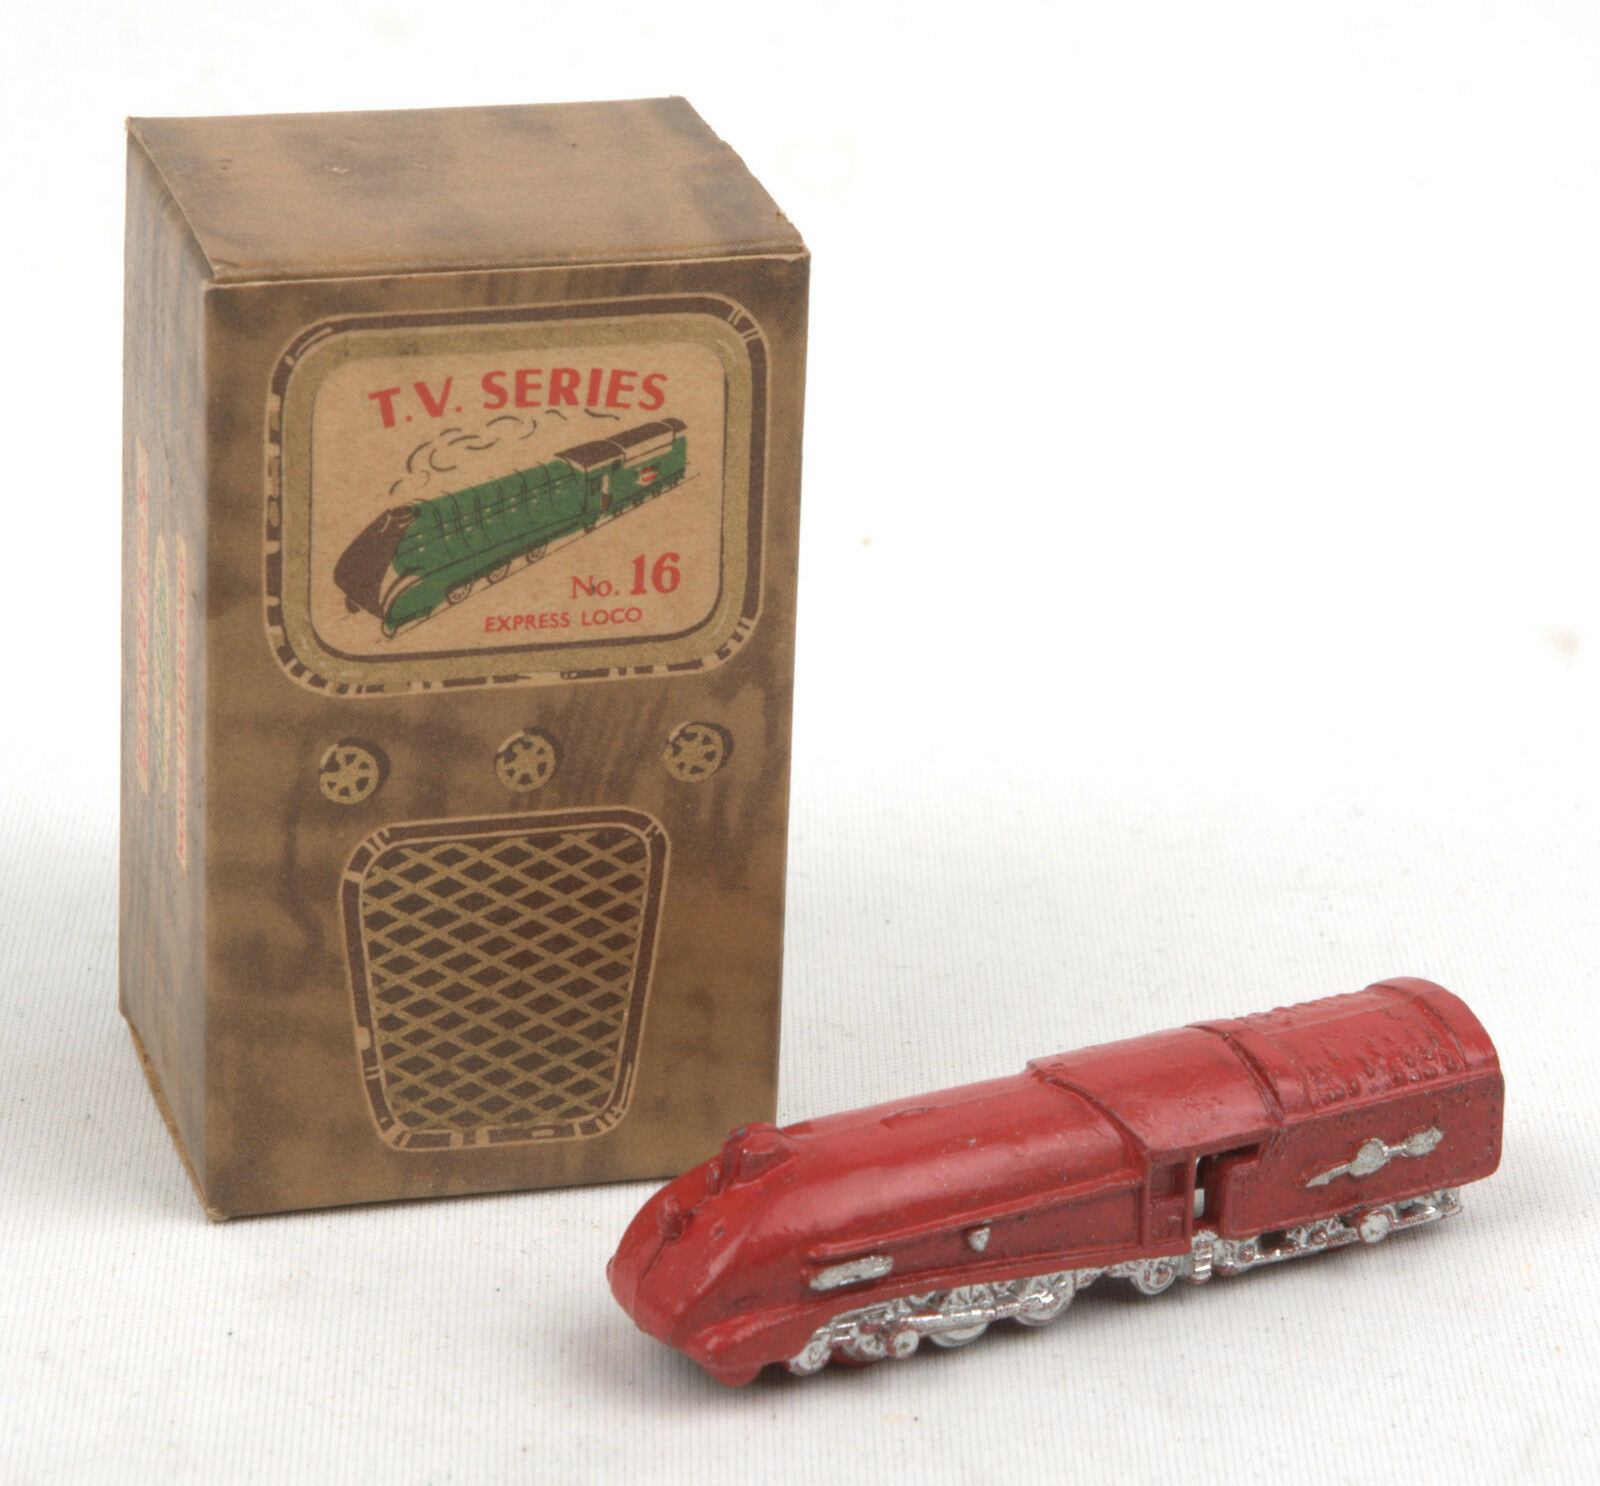 Vintage Benbros T.V Series No.16 Red Streamlined Express Loco BOXED